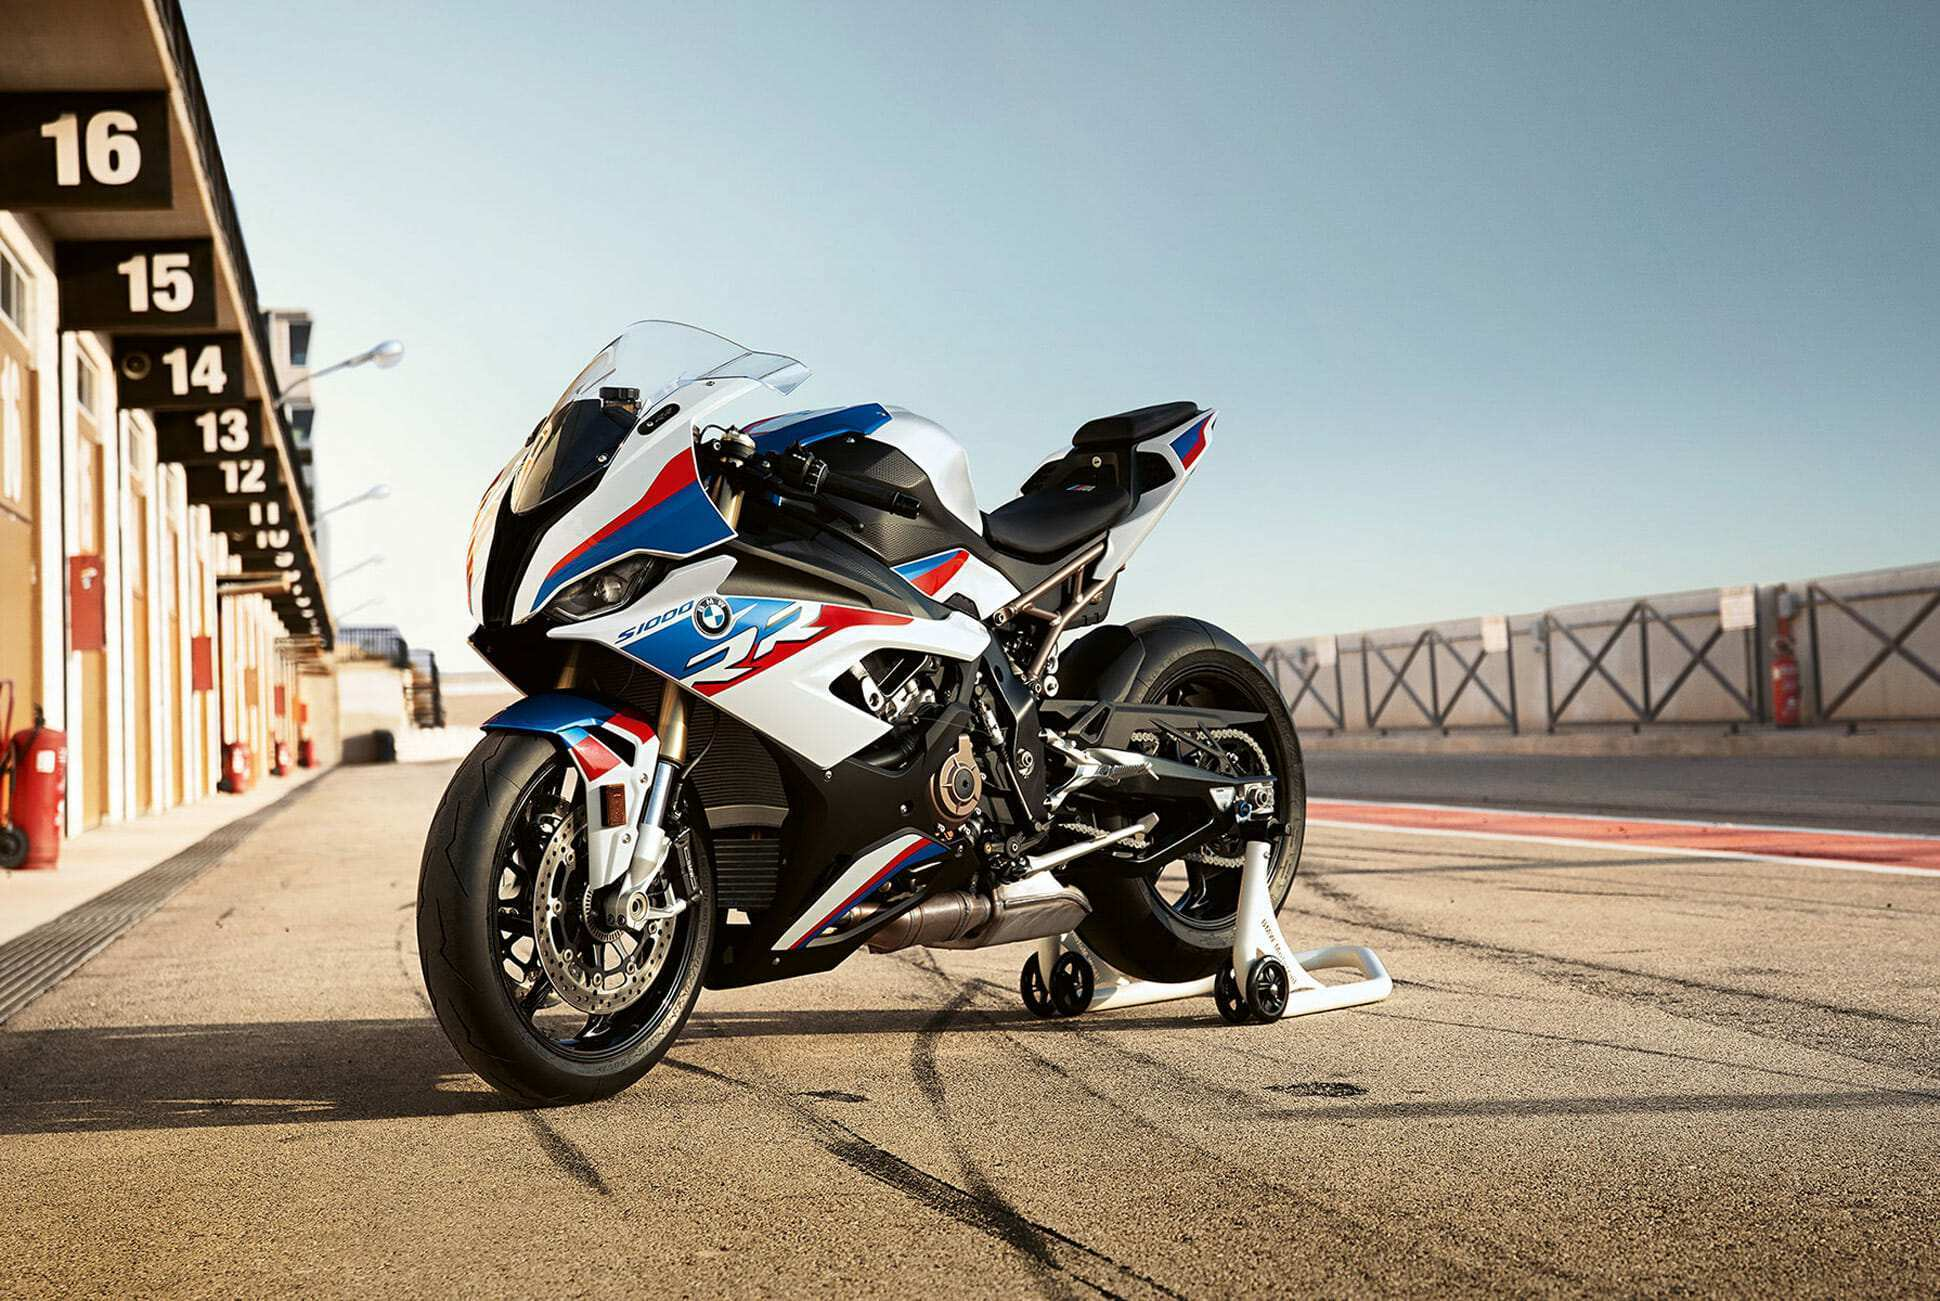 72 The Best 2020 BMW S1000Rr Price Picture